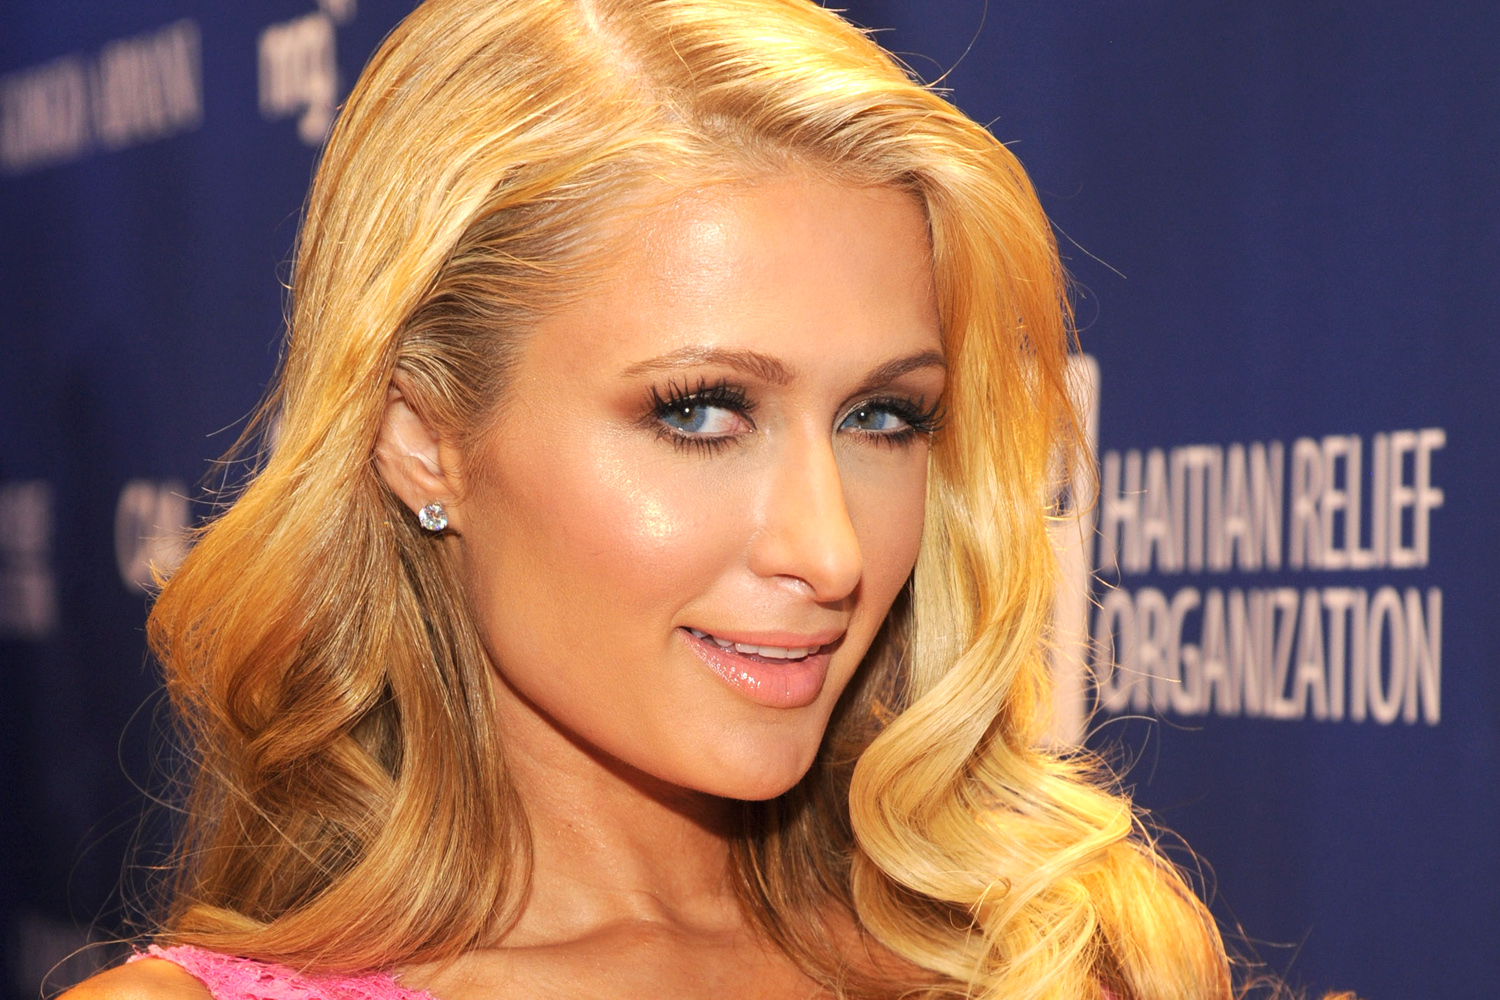 BEVERLY HILLS, CA - JANUARY 11:  Paris Hilton attends The 3rd annual Sean Penn & Friends HELP HAITI HOME Gala benefiting J/P HRO presented by Giorgio Armani at Montage Beverly Hills on January 11, 2014 in Beverly Hills, California.  (Photo by Kevin Mazur/Getty Images for J/P Haitian Relief Organization)